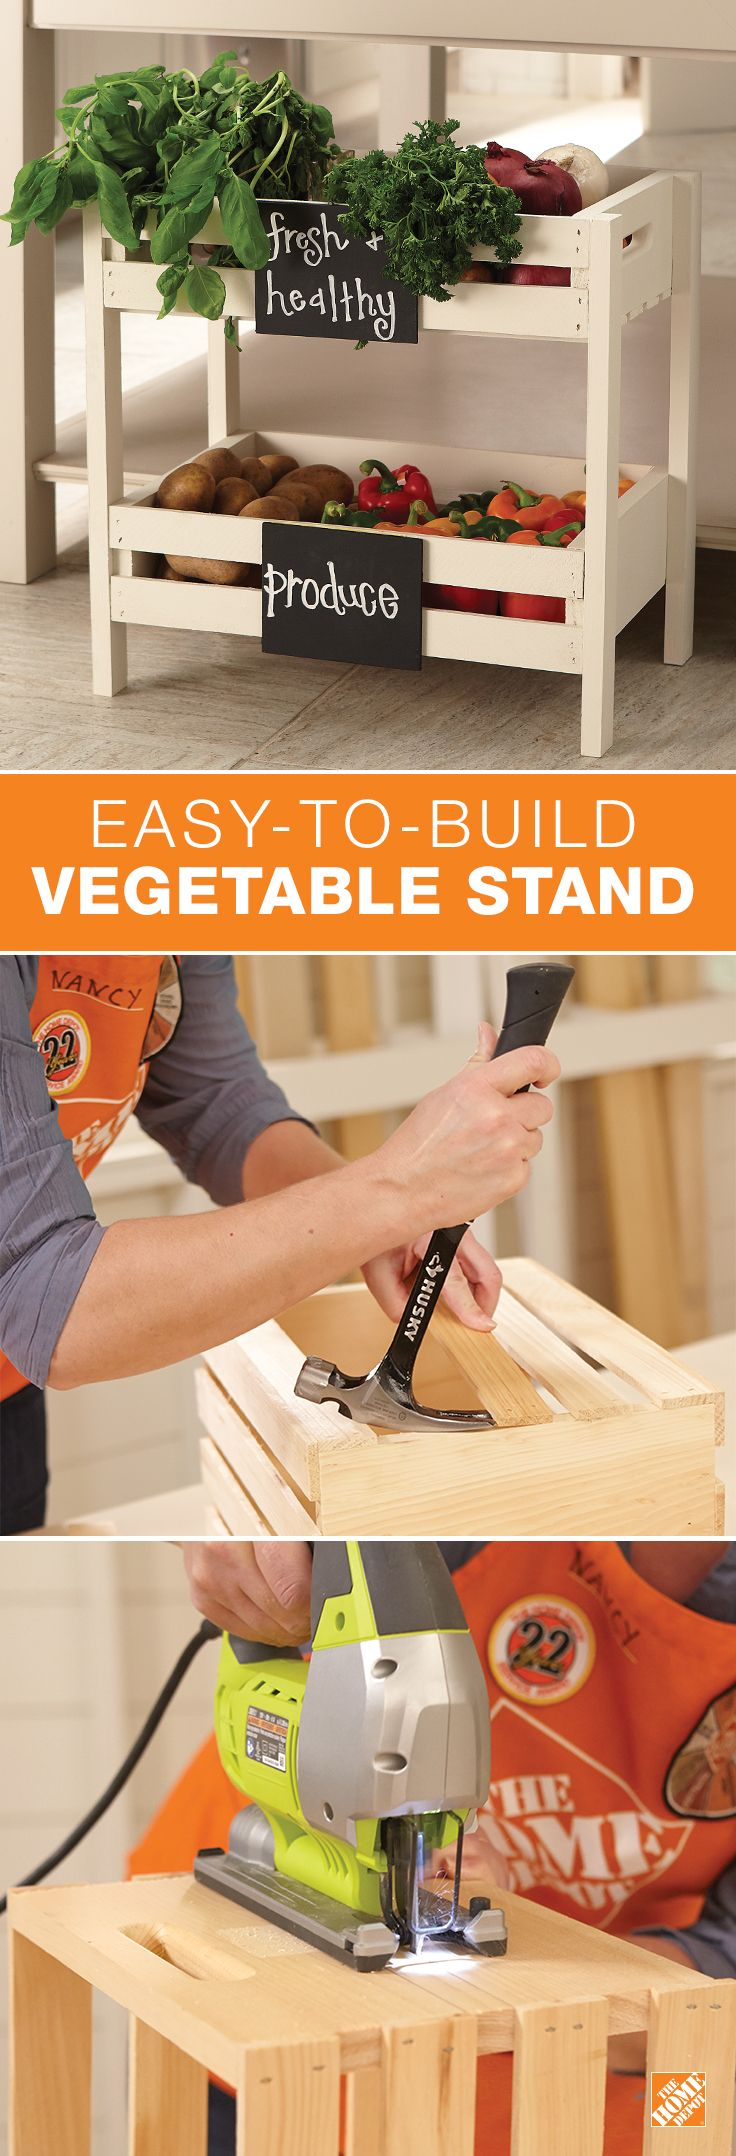 Build a crafty home for your vegetables with our DIY wooden vegetable storage shelf for your kitchen. Using a circular saw and other carpentry tools, you can build your own produce stand, complete with a chalkboard sign to identify your fruits and veggies.